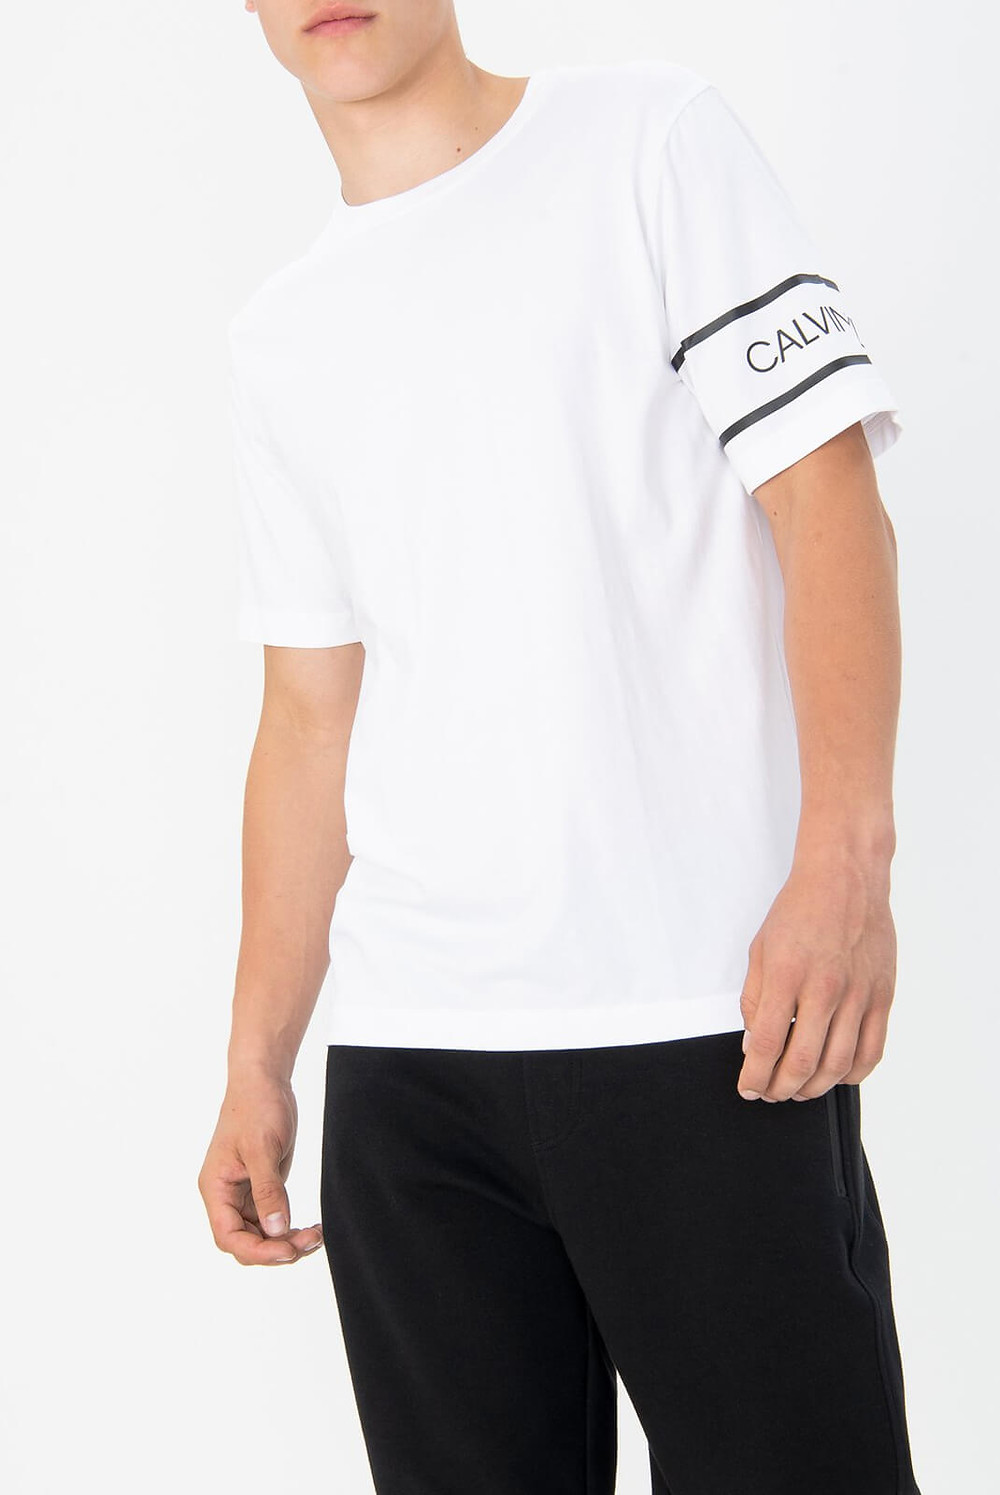 T-shirt Calvin klein blanc Low Cloth's vêtement low cost